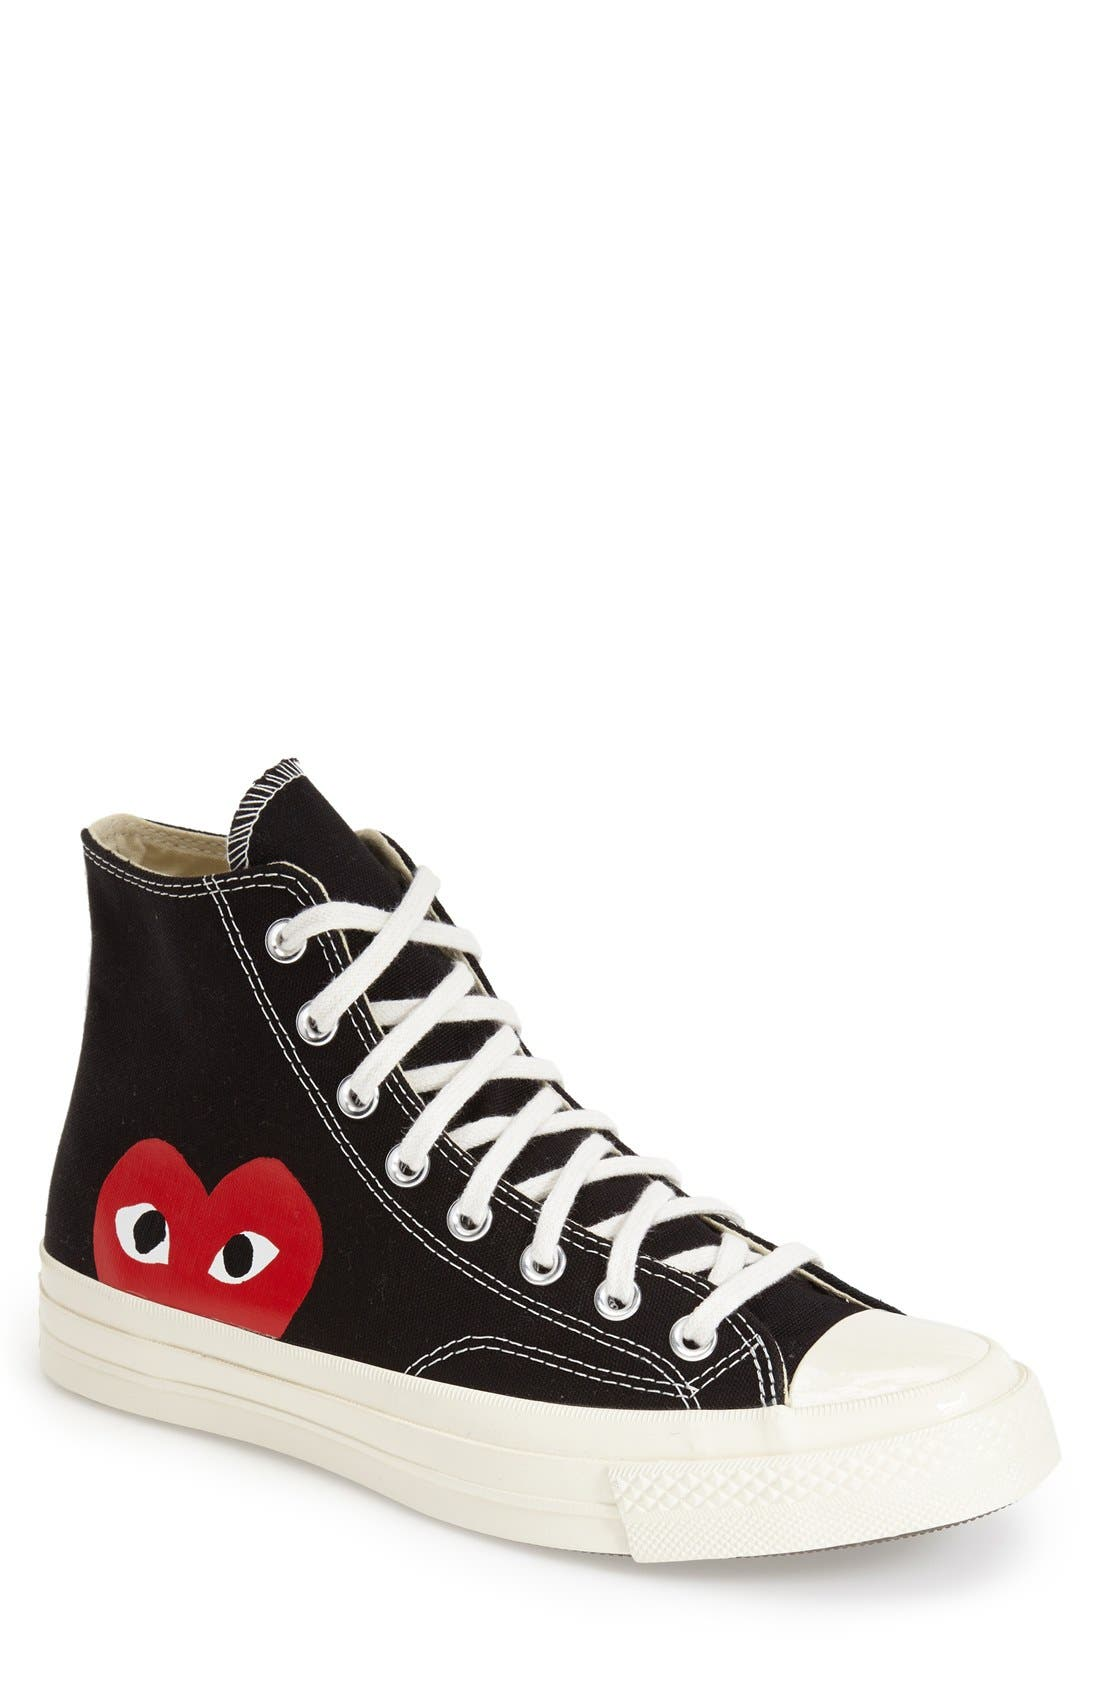 Comme des Garçons PLAY x Converse Chuck Taylor<sup>®</sup> - Hidden Heart High Top Sneaker,                             Main thumbnail 1, color,                             Black Canvas